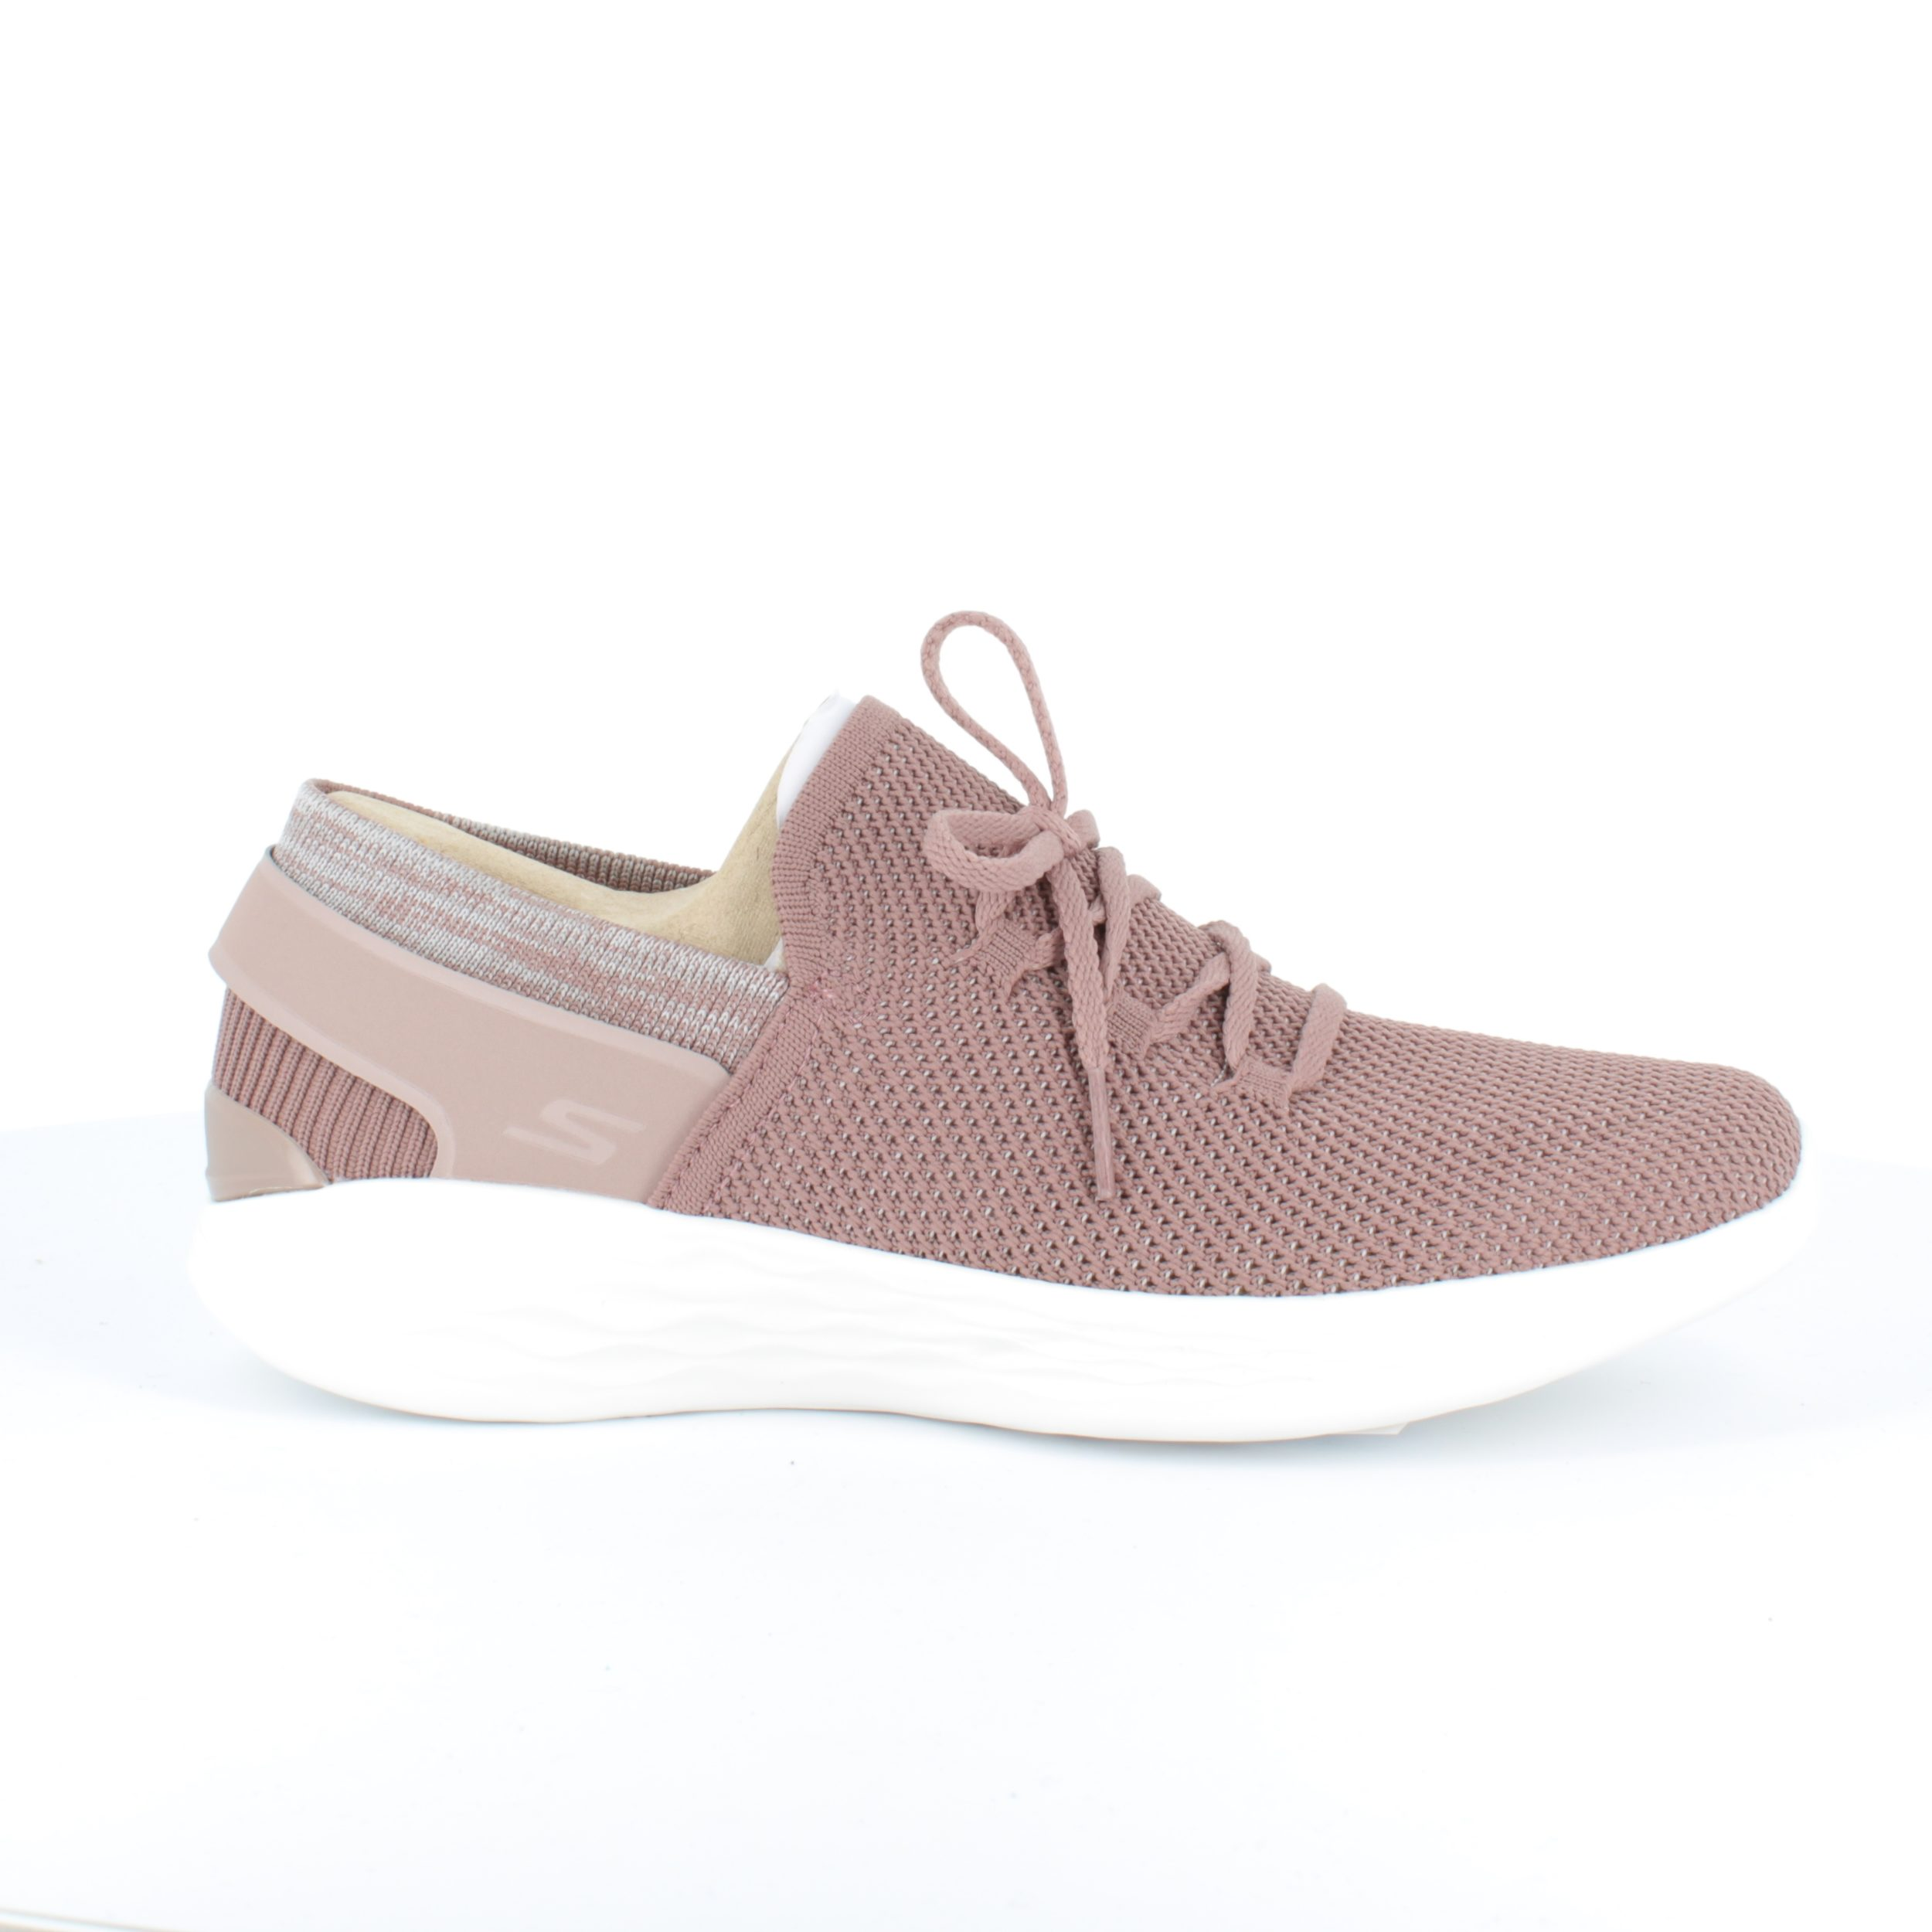 Image of   You by Skechers sneakers i flot farve - 36